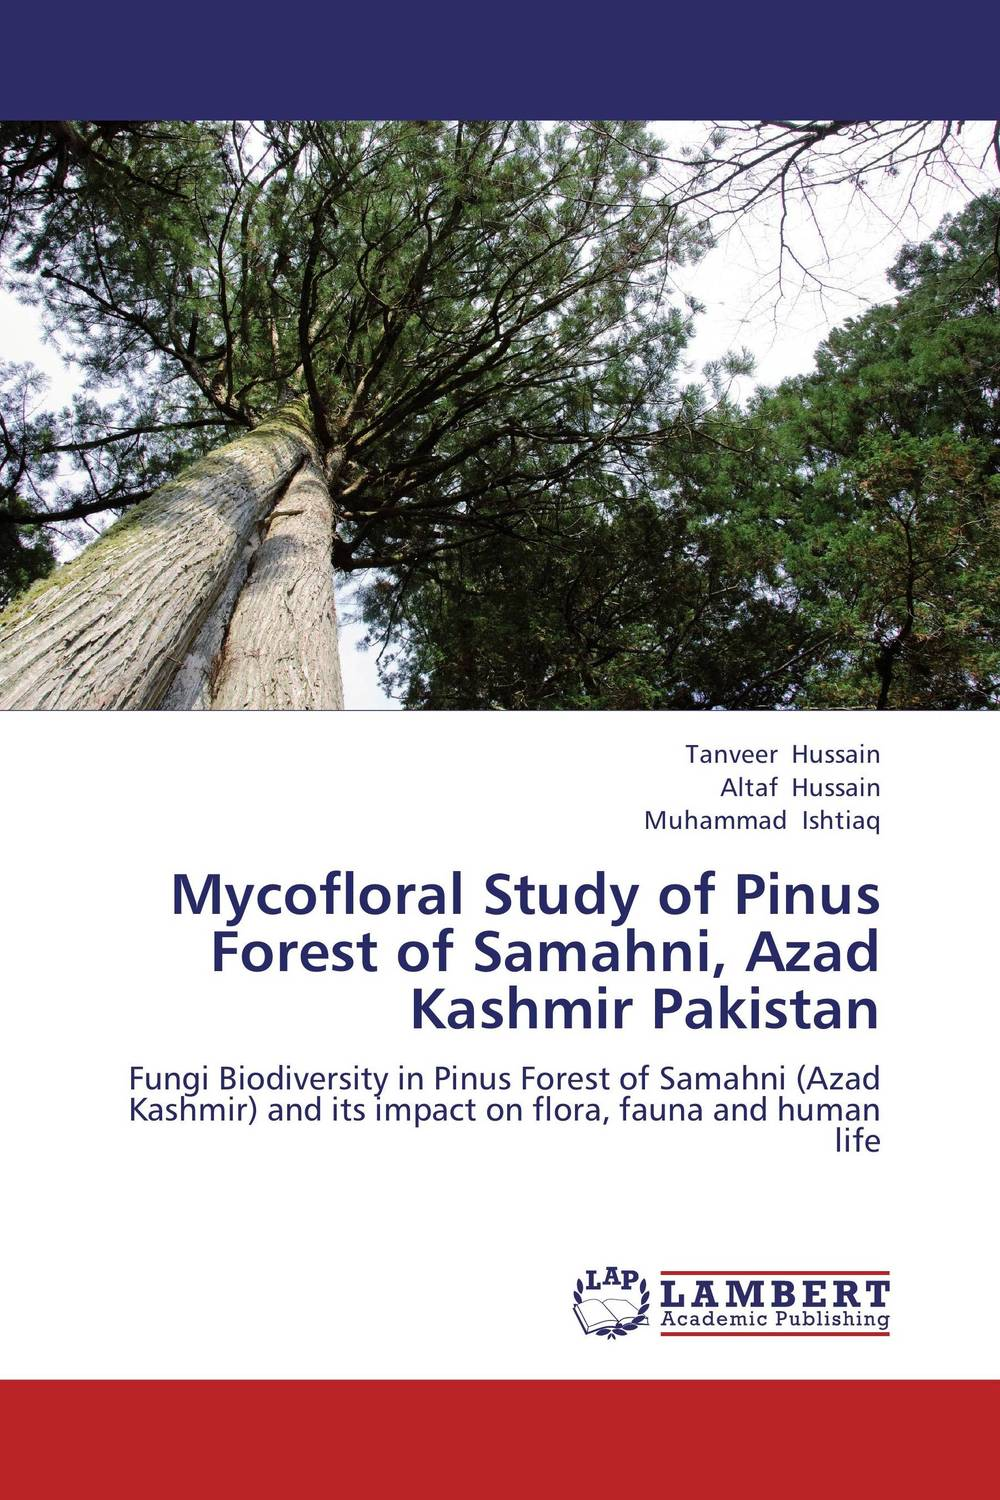 Mycofloral Study of Pinus Forest of Samahni, Azad Kashmir Pakistan бордюр blau fifth avenue moldura mlv 3 5x25